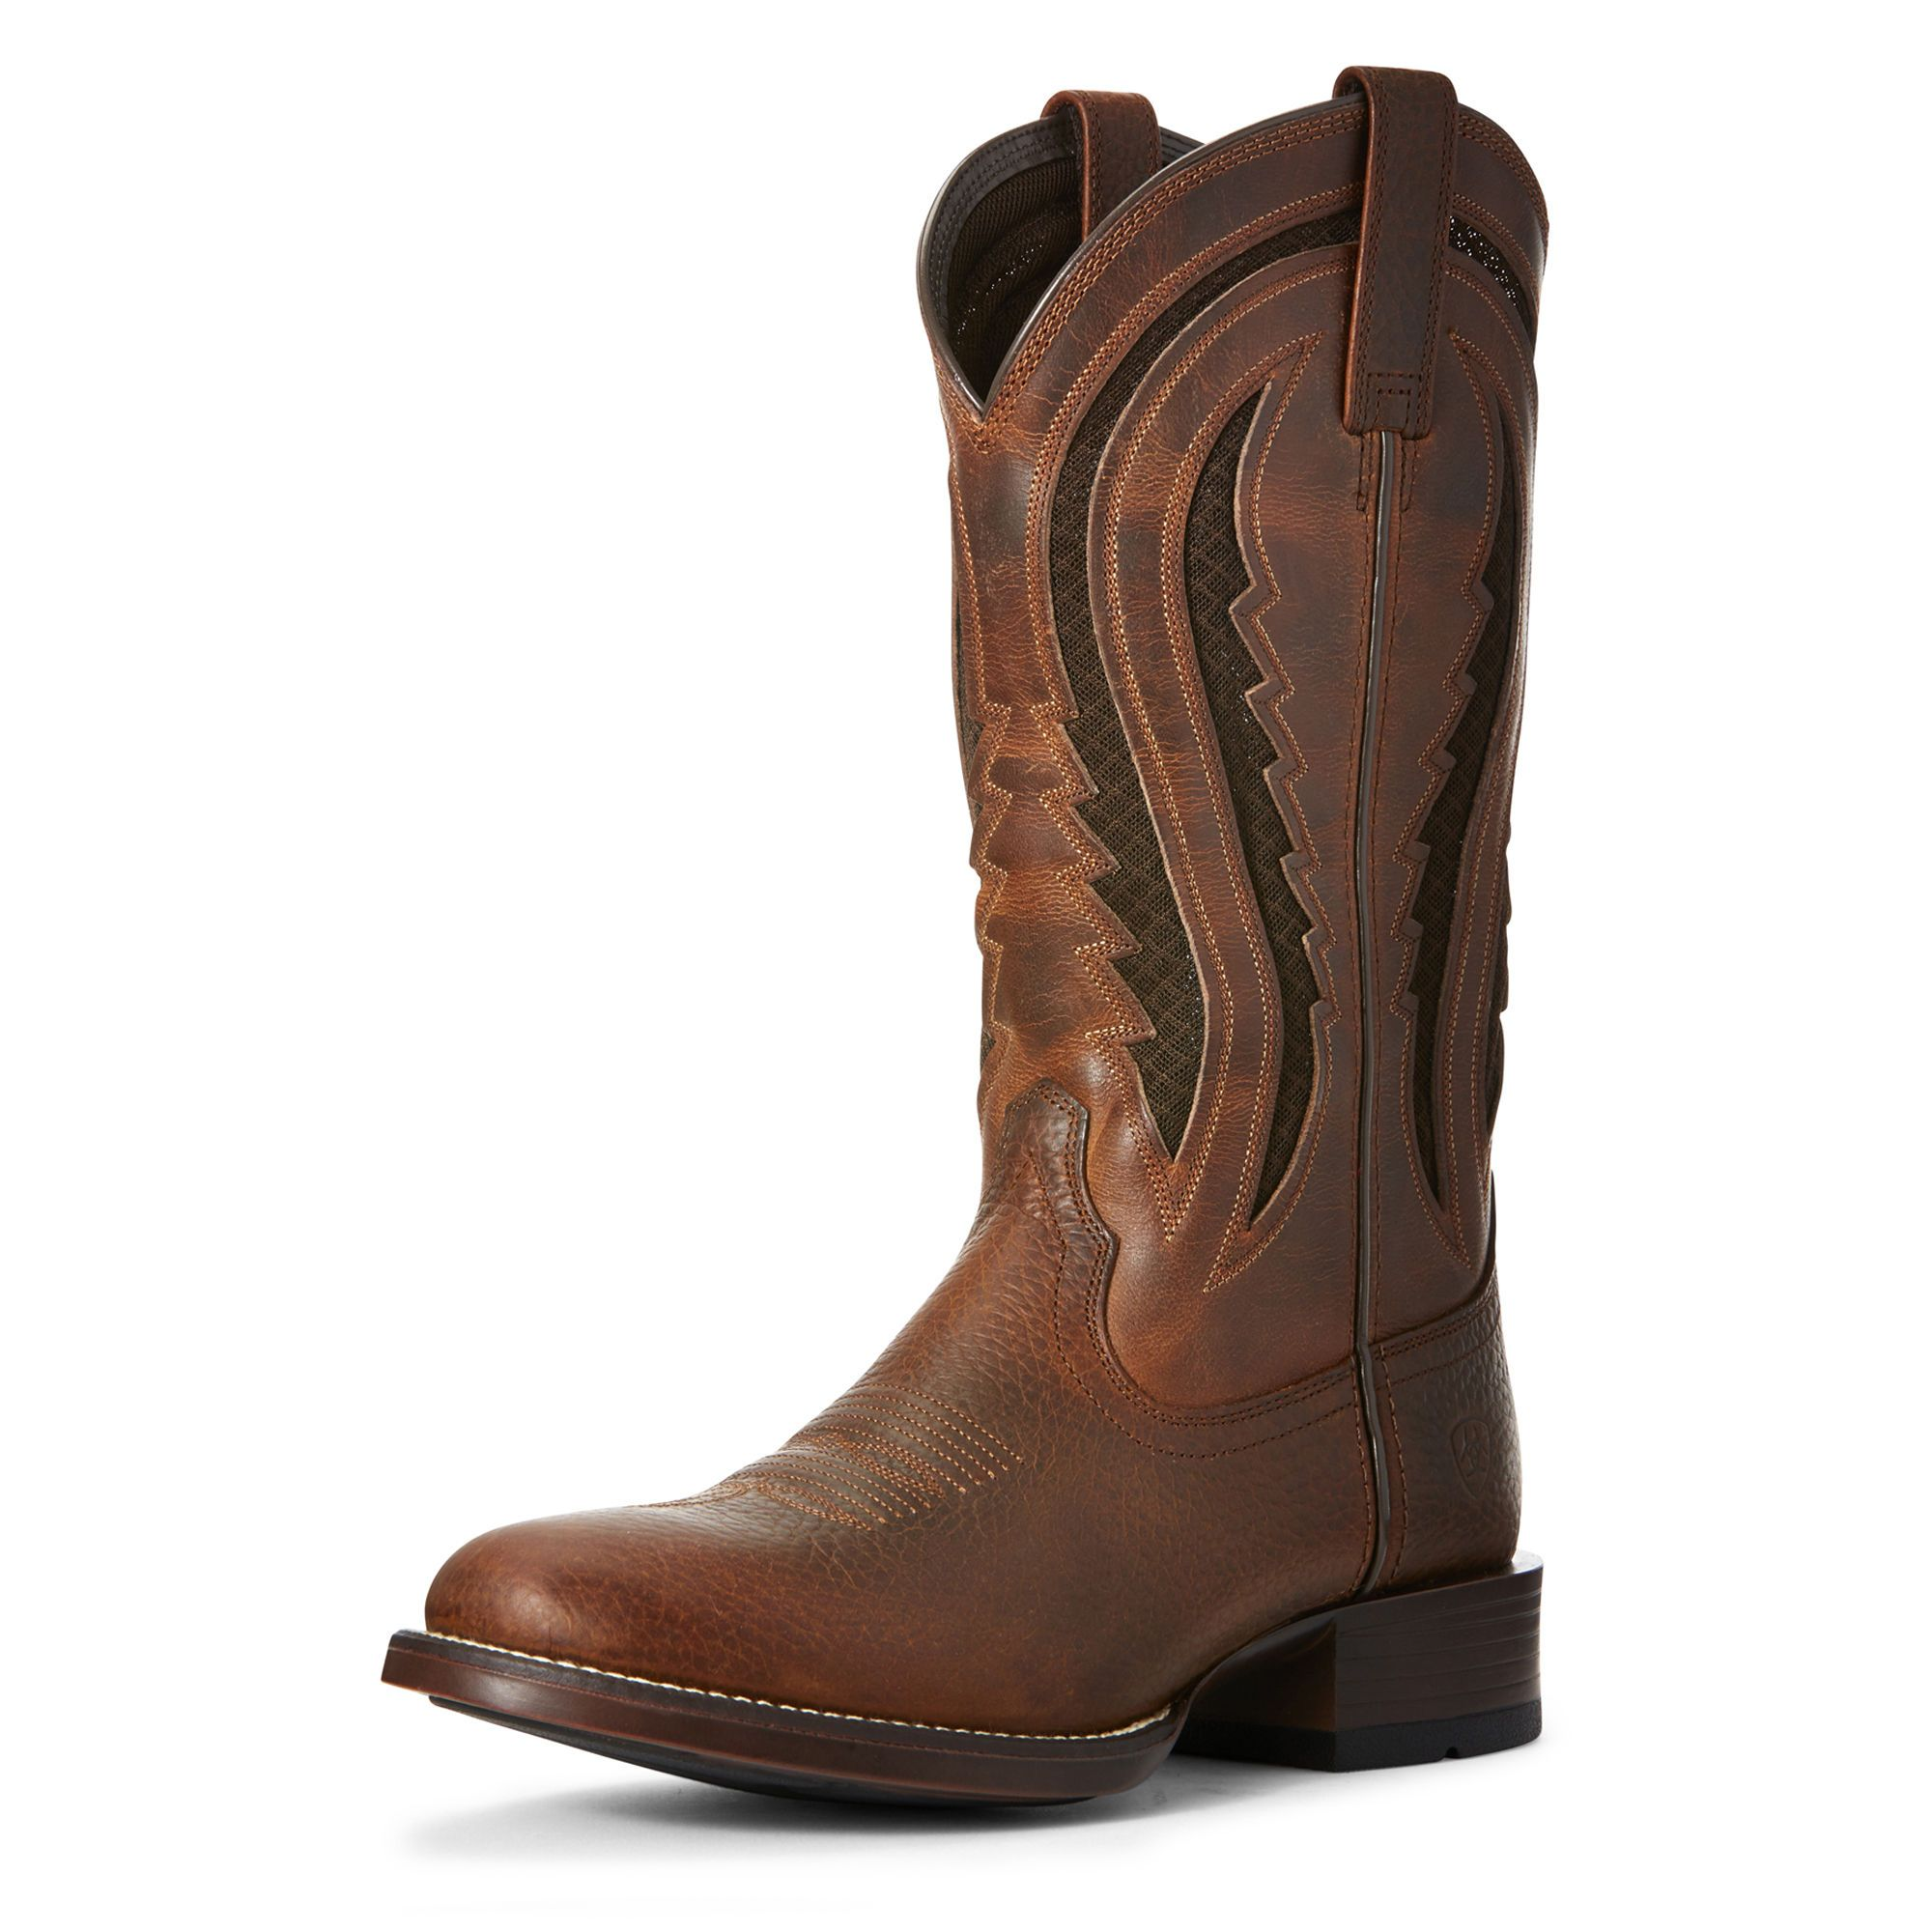 Butte Venttek Western Boot Western Boots Boots Composite Toe Work Boots